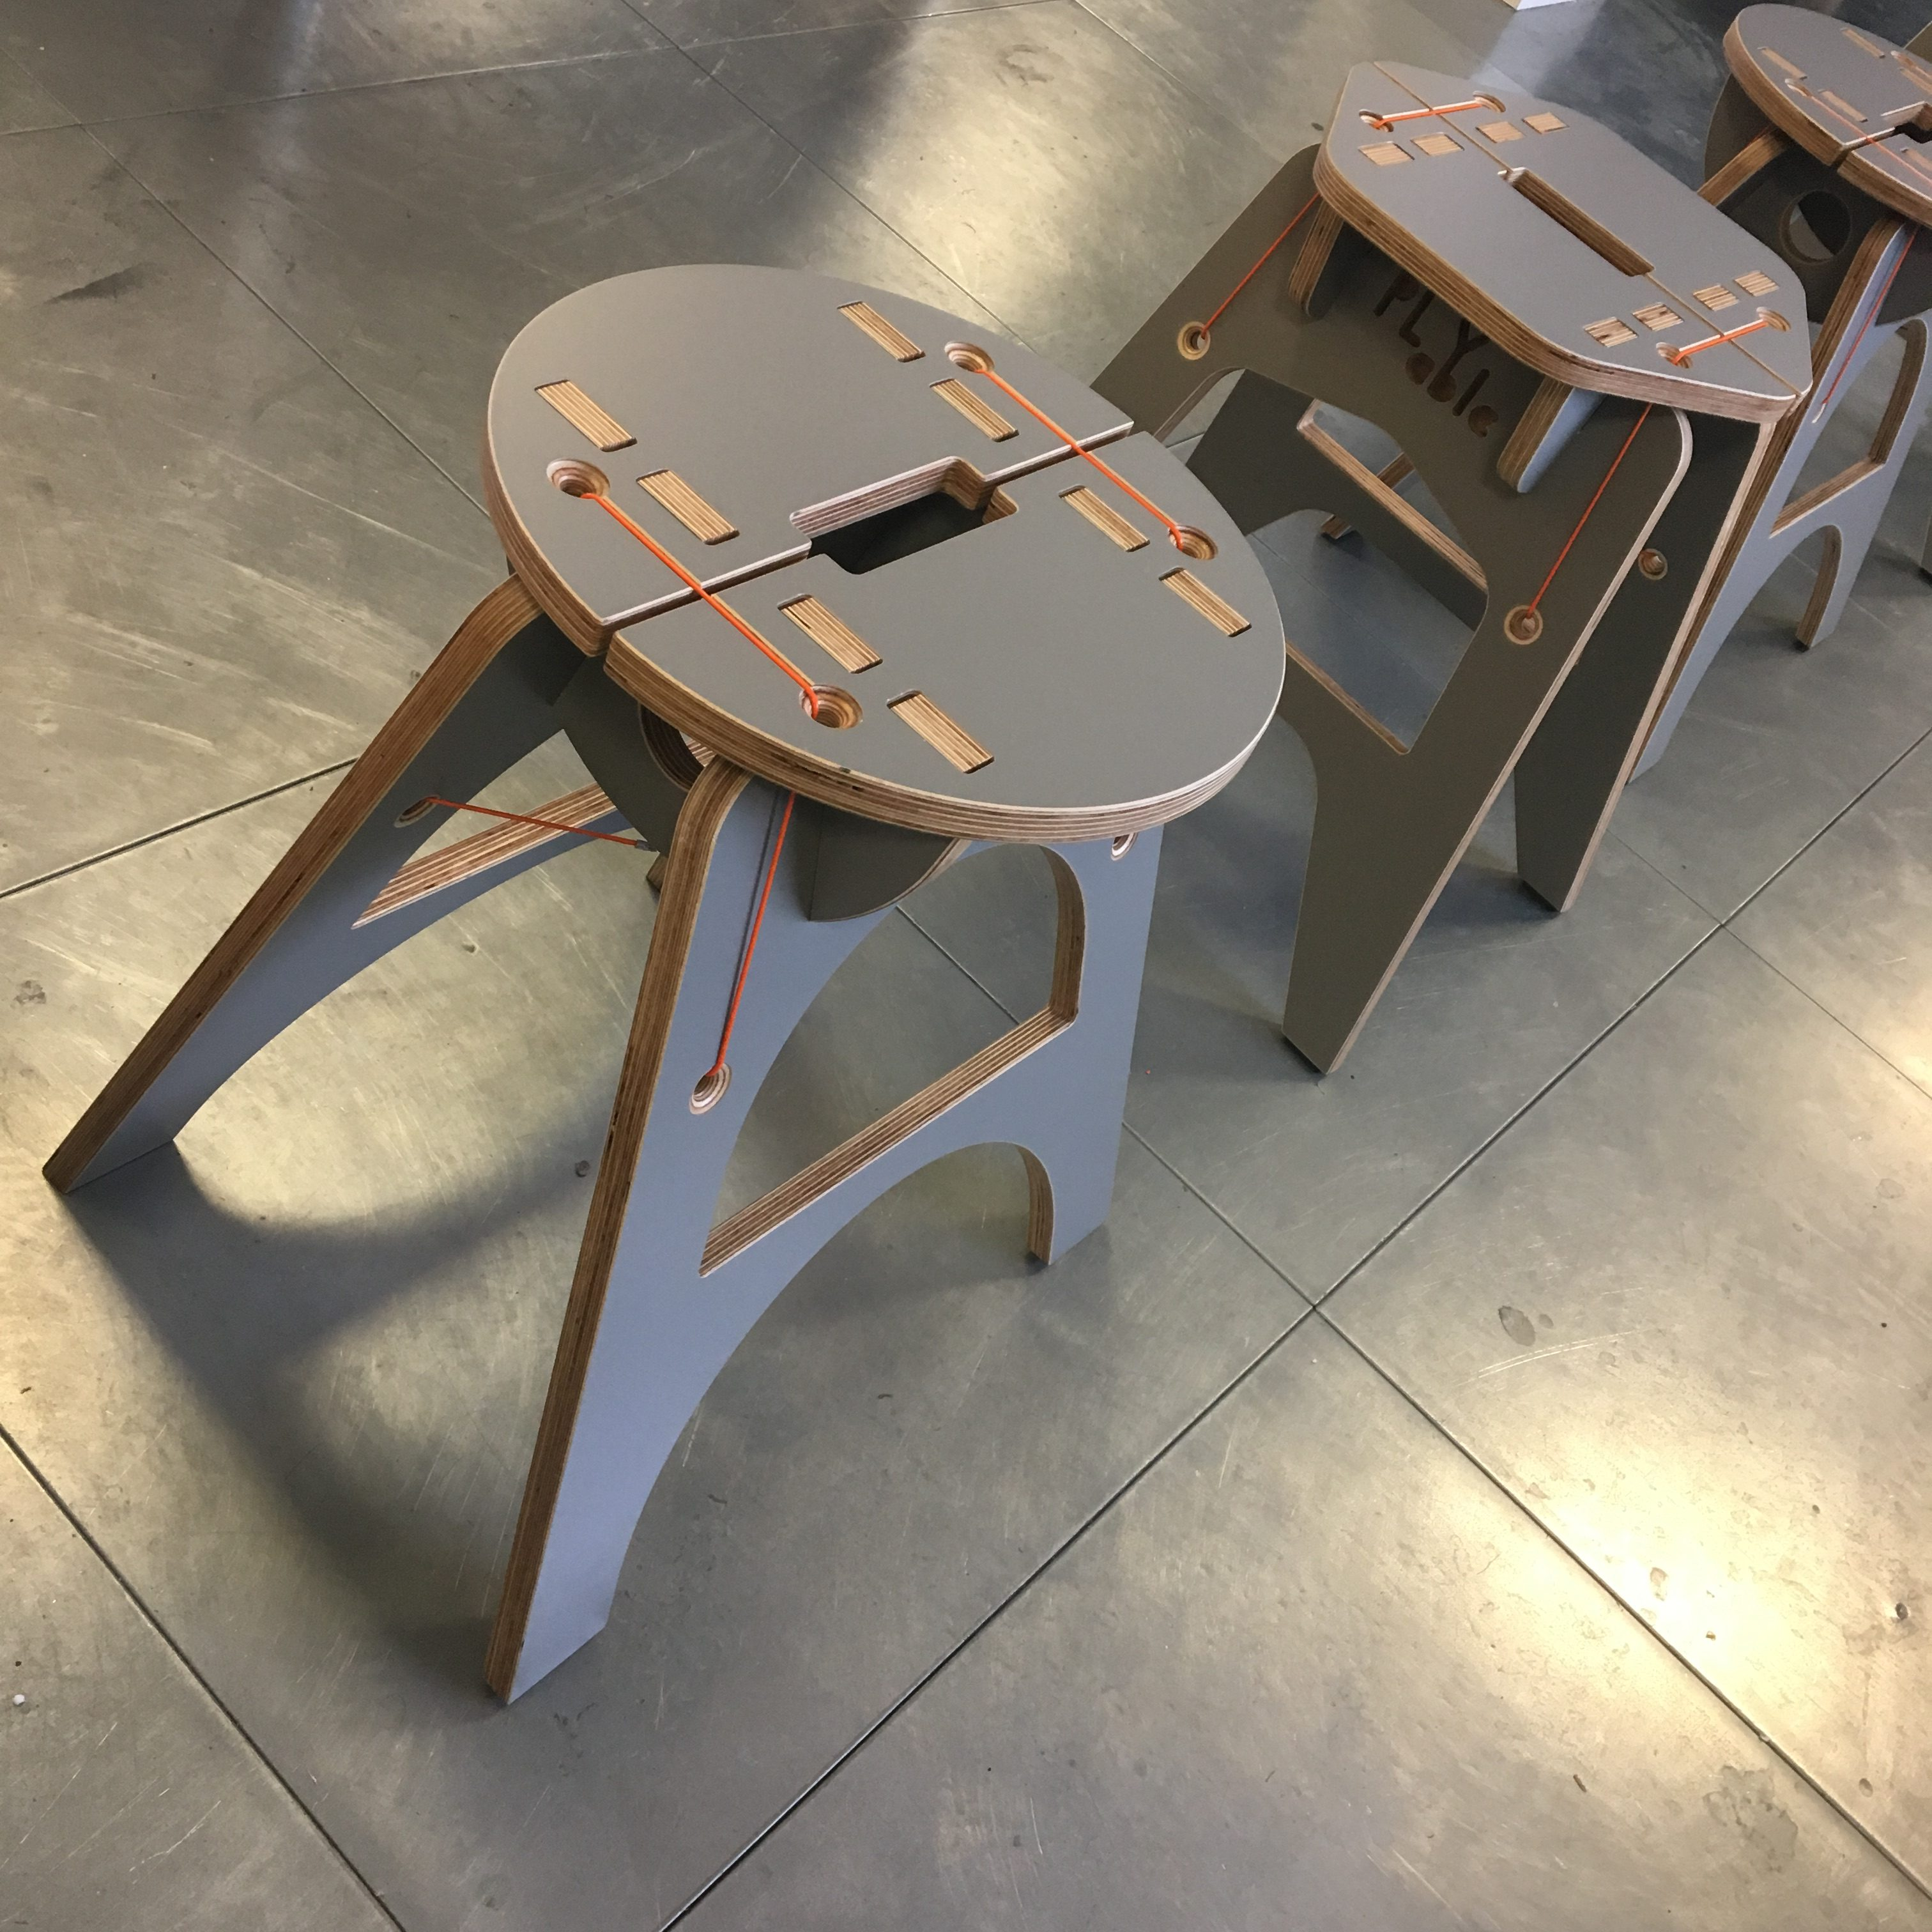 PLYable 15x8x4 Stool Plywood Furniture